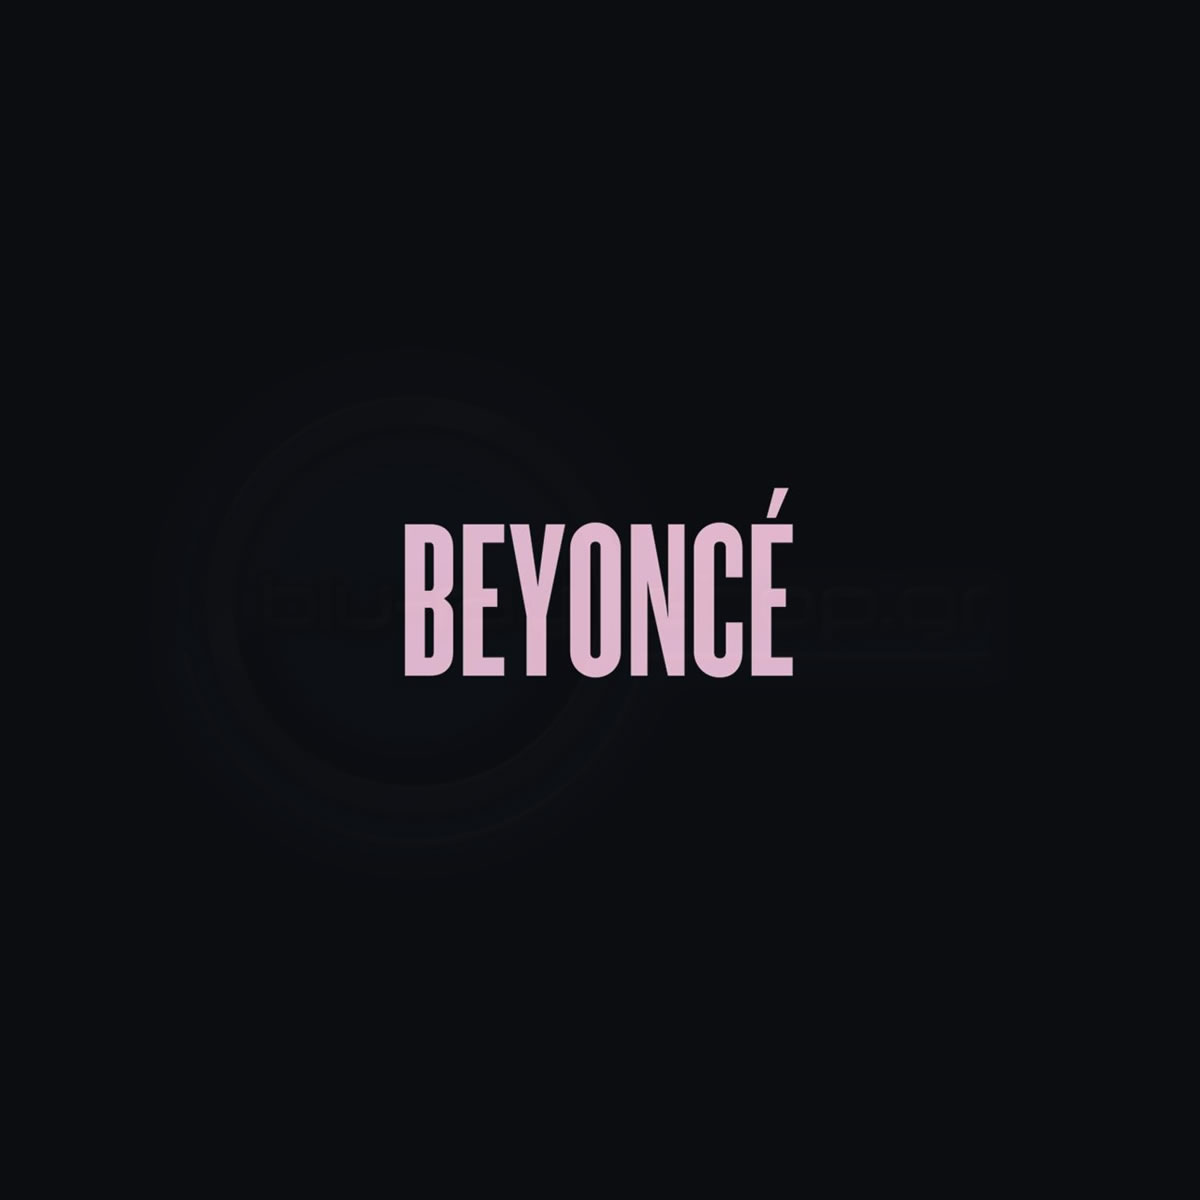 BEYONCÉ (BLU-RAY + AUDIO CD)